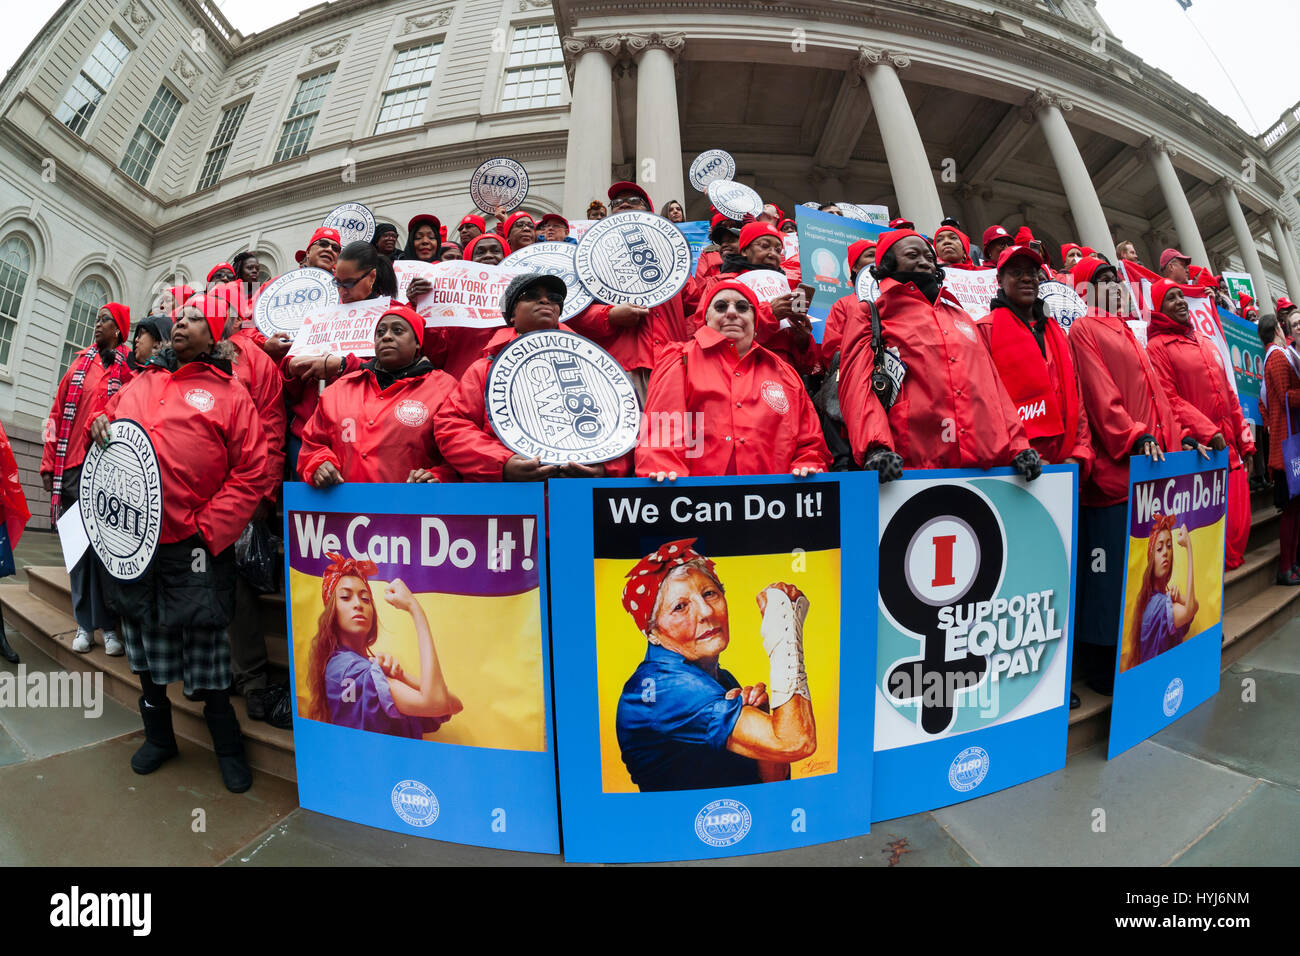 New York, USA. 4th April, 2017. New York, USA. 04th Apr, 2017. Activists, community leaders and politicians gather - Stock Image